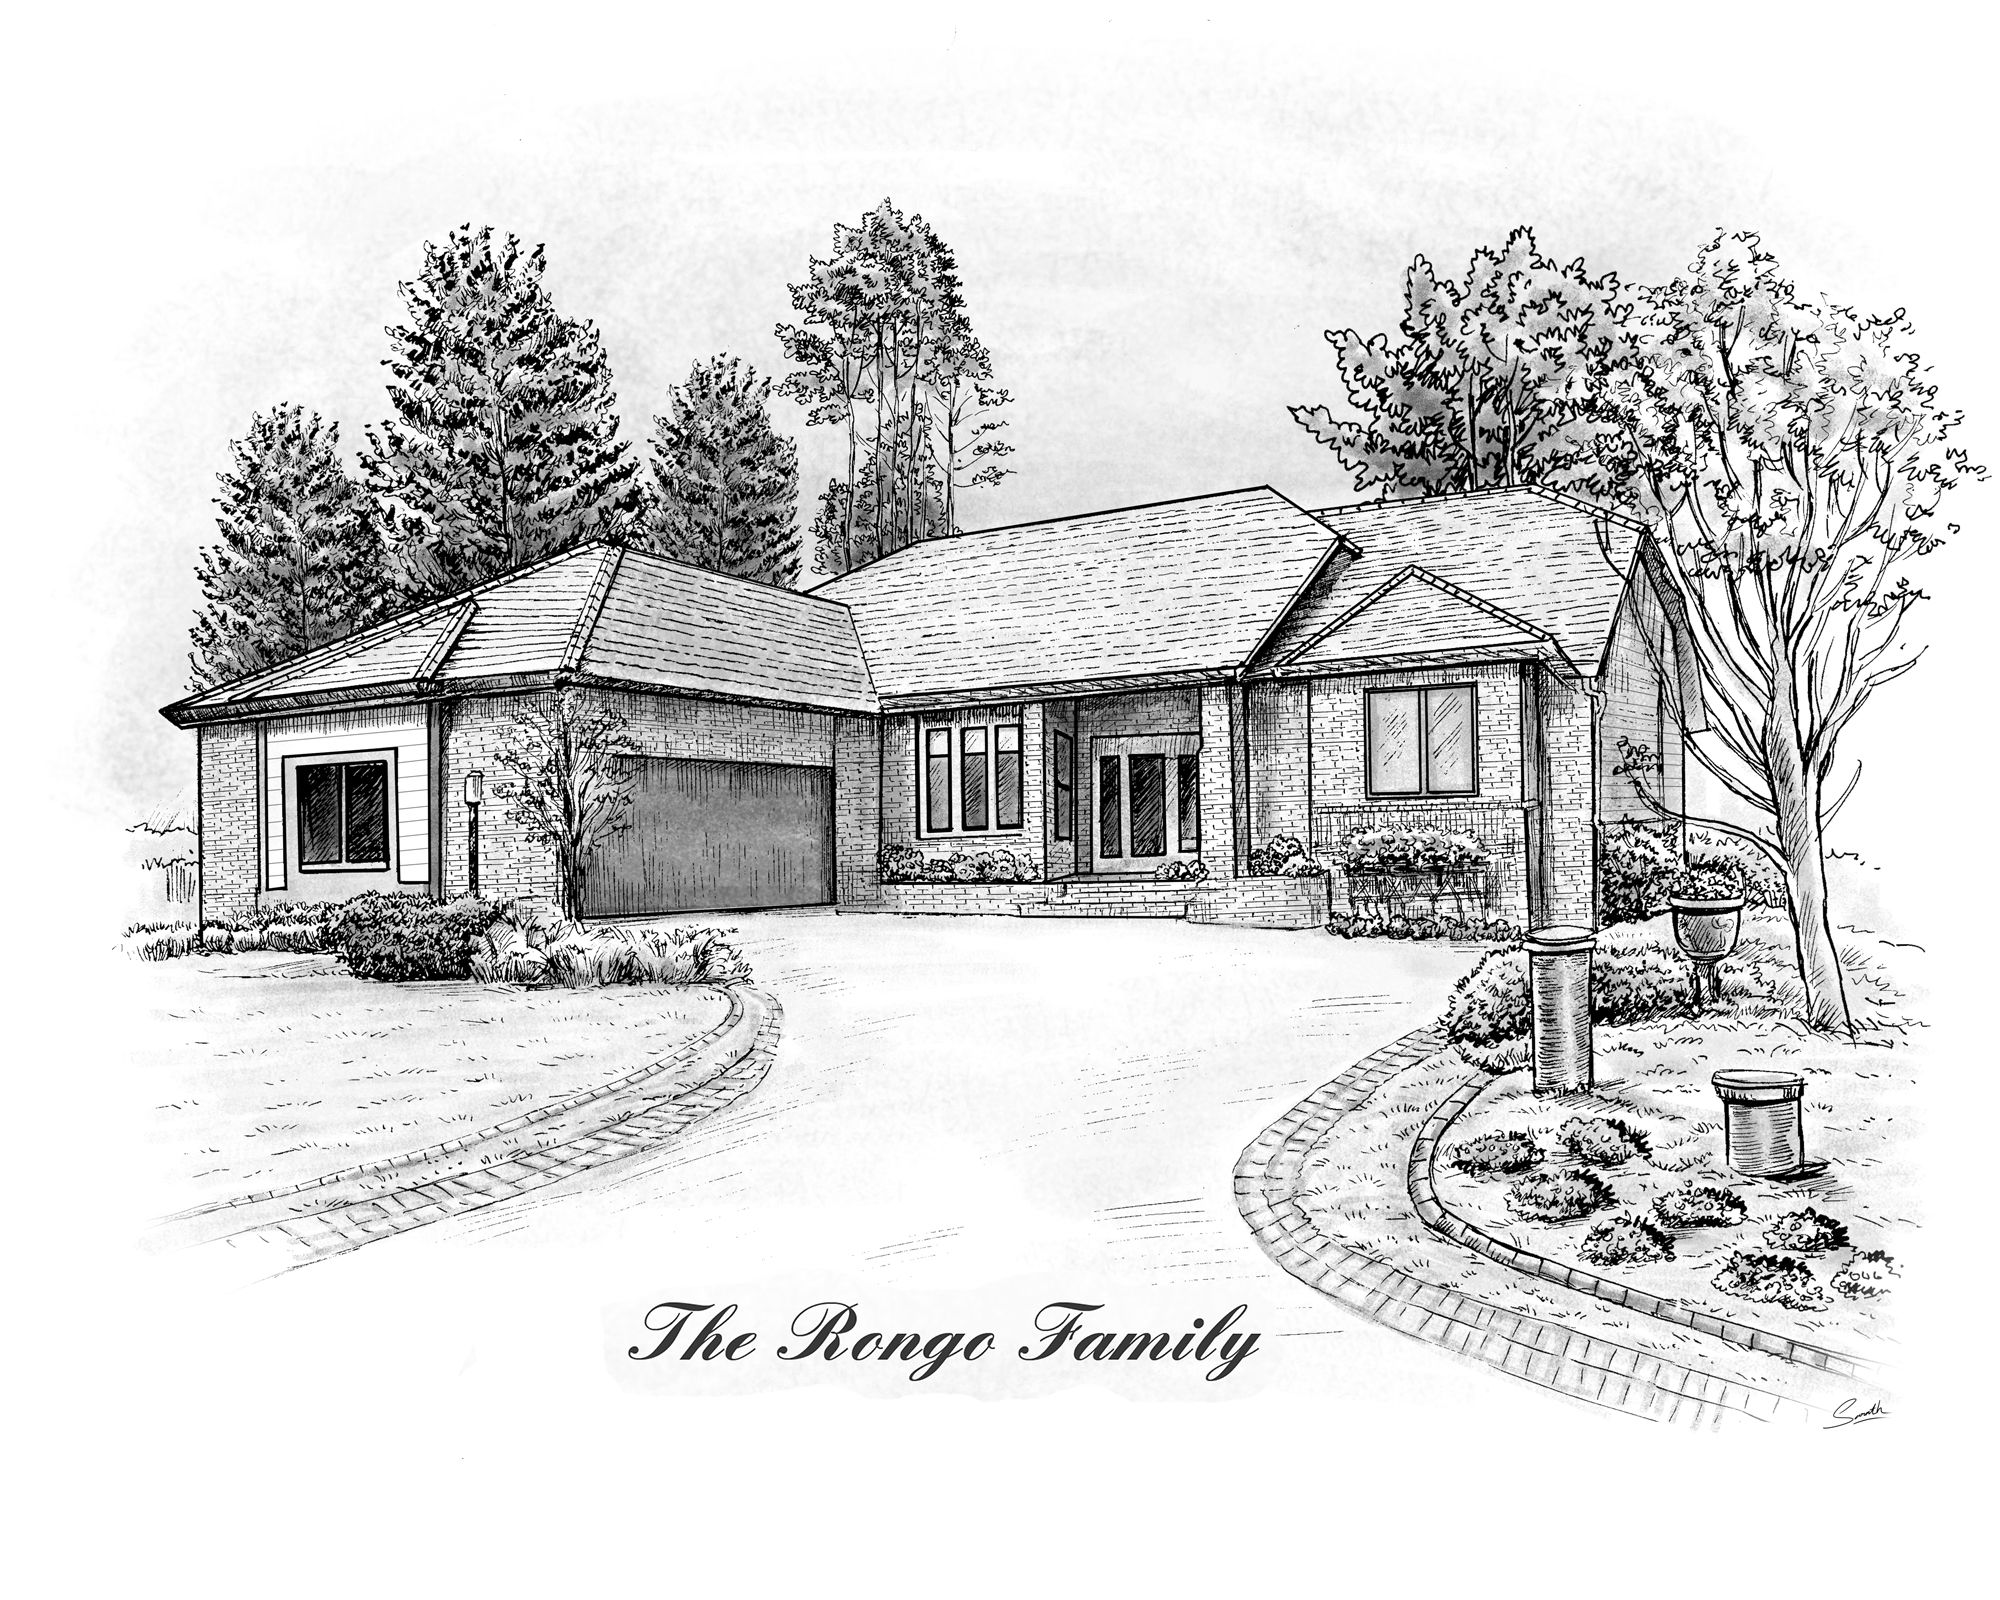 House Sketches custom pen & ink house sketches | house sketch